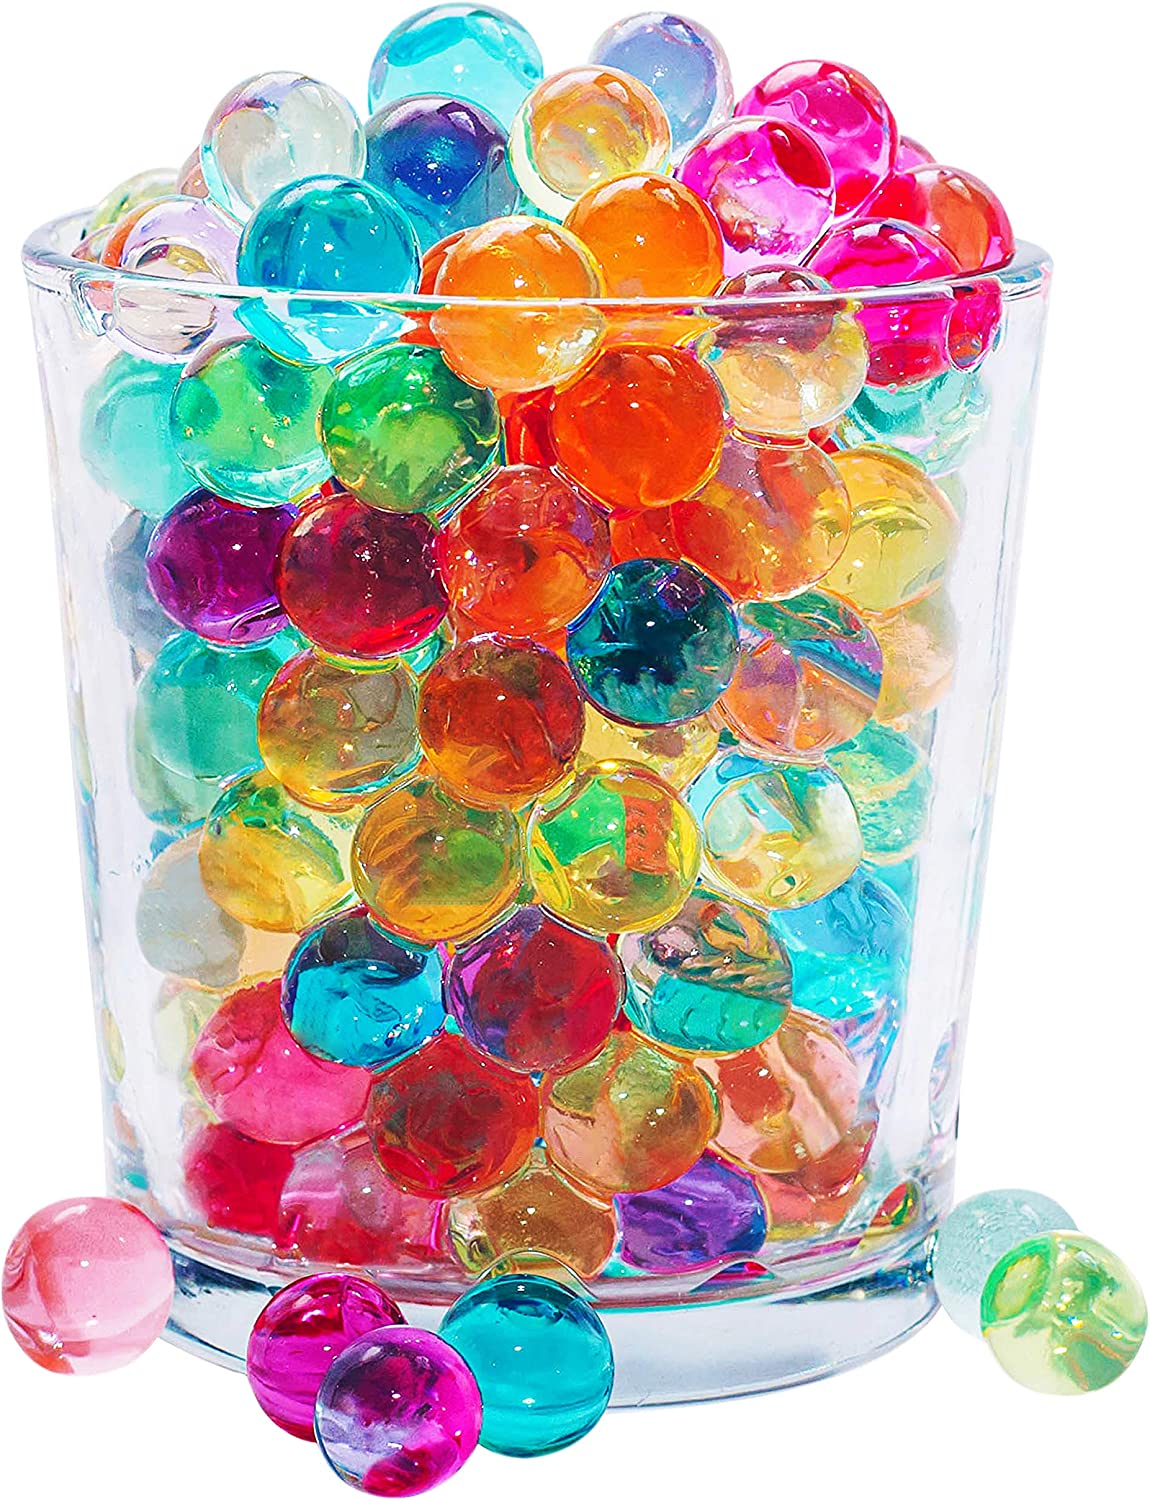 20 Washington Mall Ranking integrated 1st place 000 Rainbow Water Beads for Kids Table Toxic - Toy Non